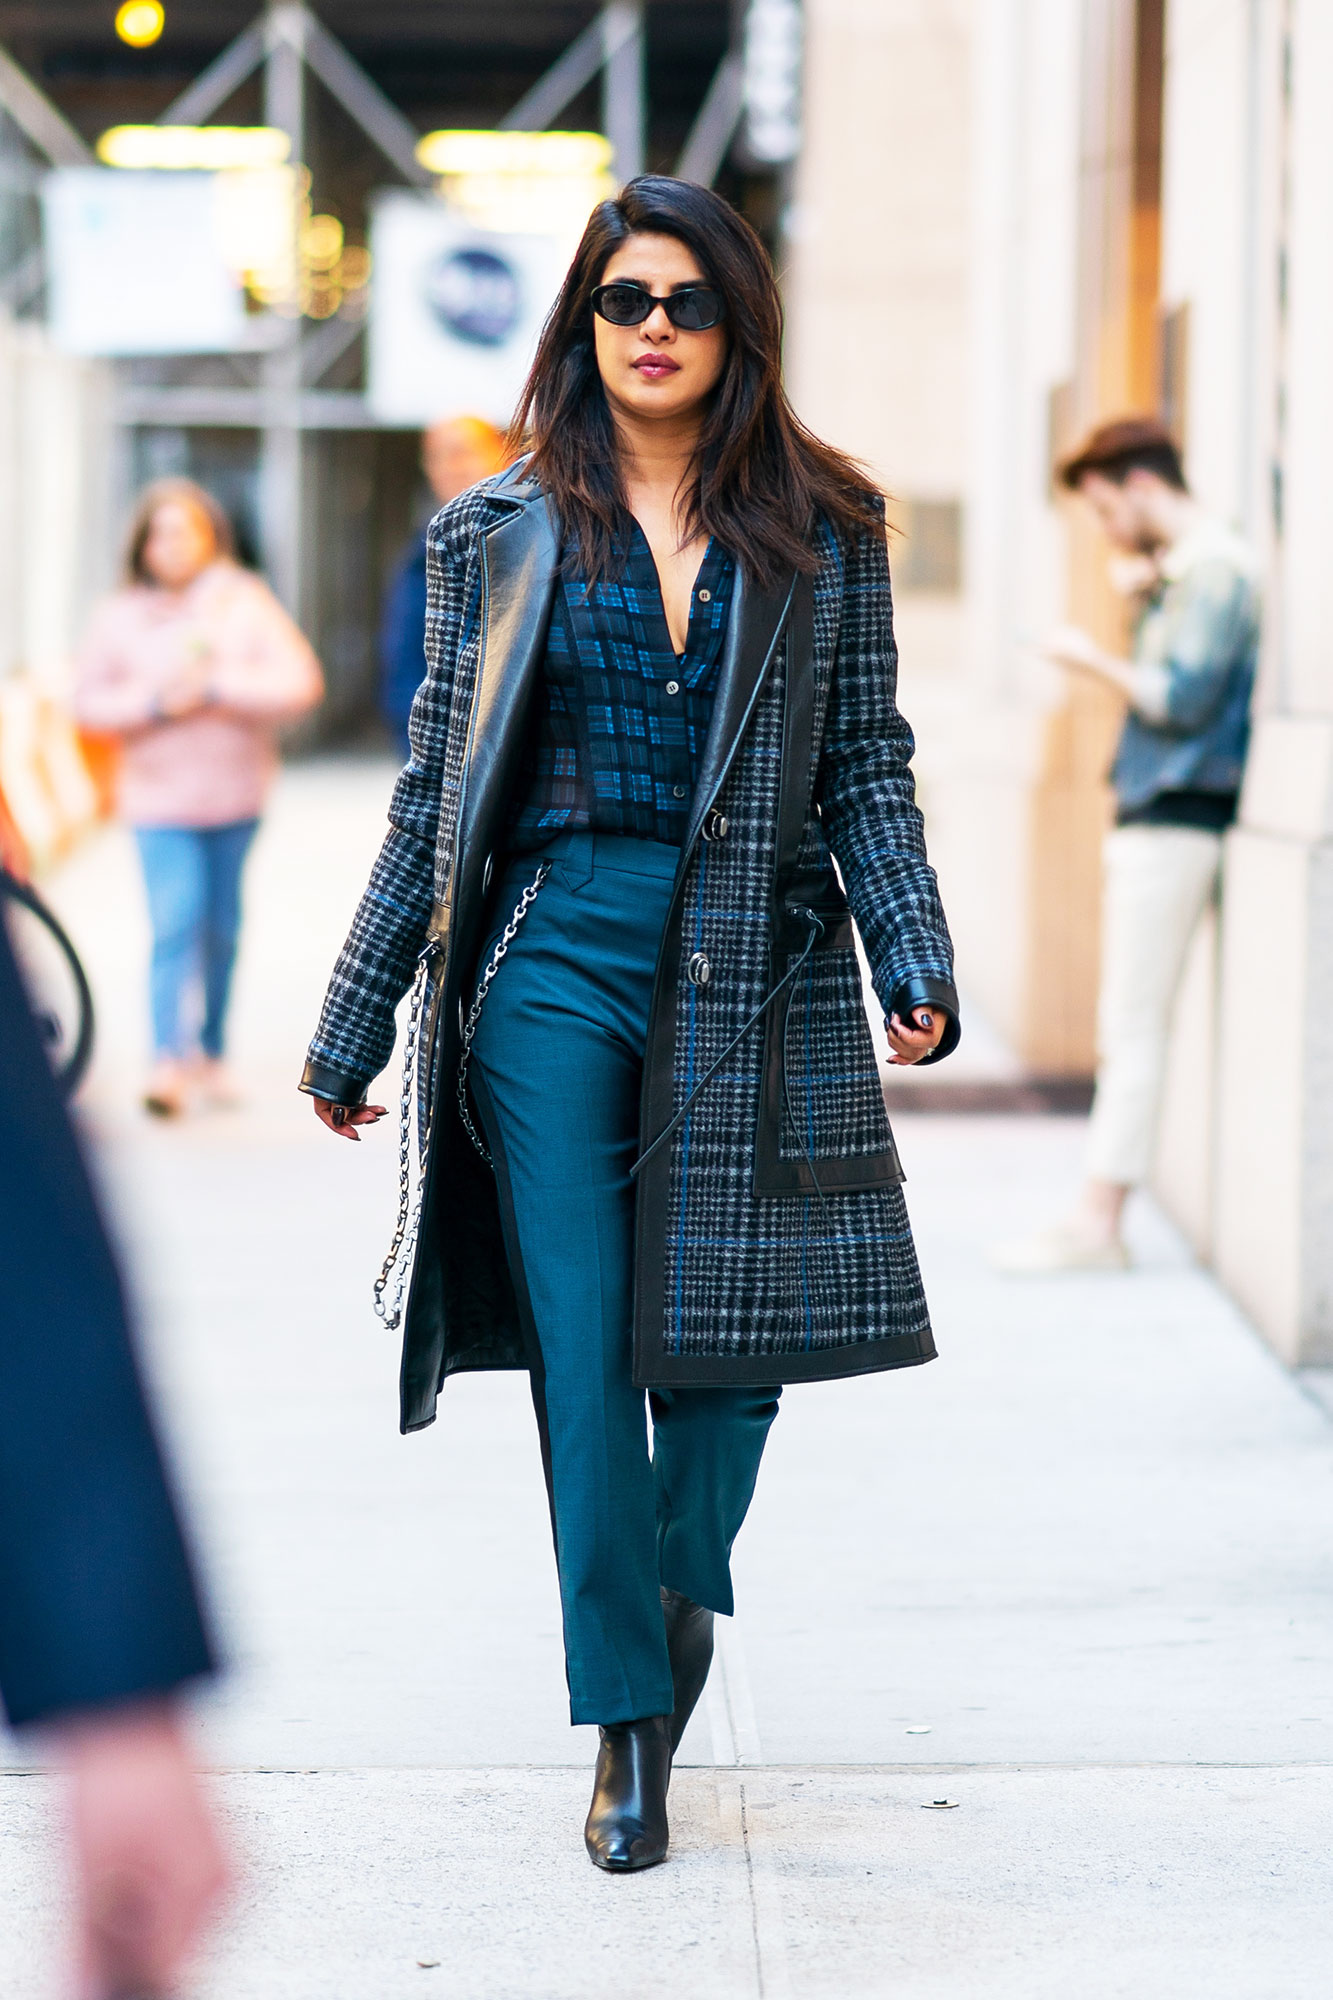 Priyanka Chopra blue plaid trench plaid shirt blue trousers pants - Showing Us how to transition our winter wardrobe to spring, the former Quantico actress sported a plaid Coach coat and Roberi & Fraud shades in NYC.